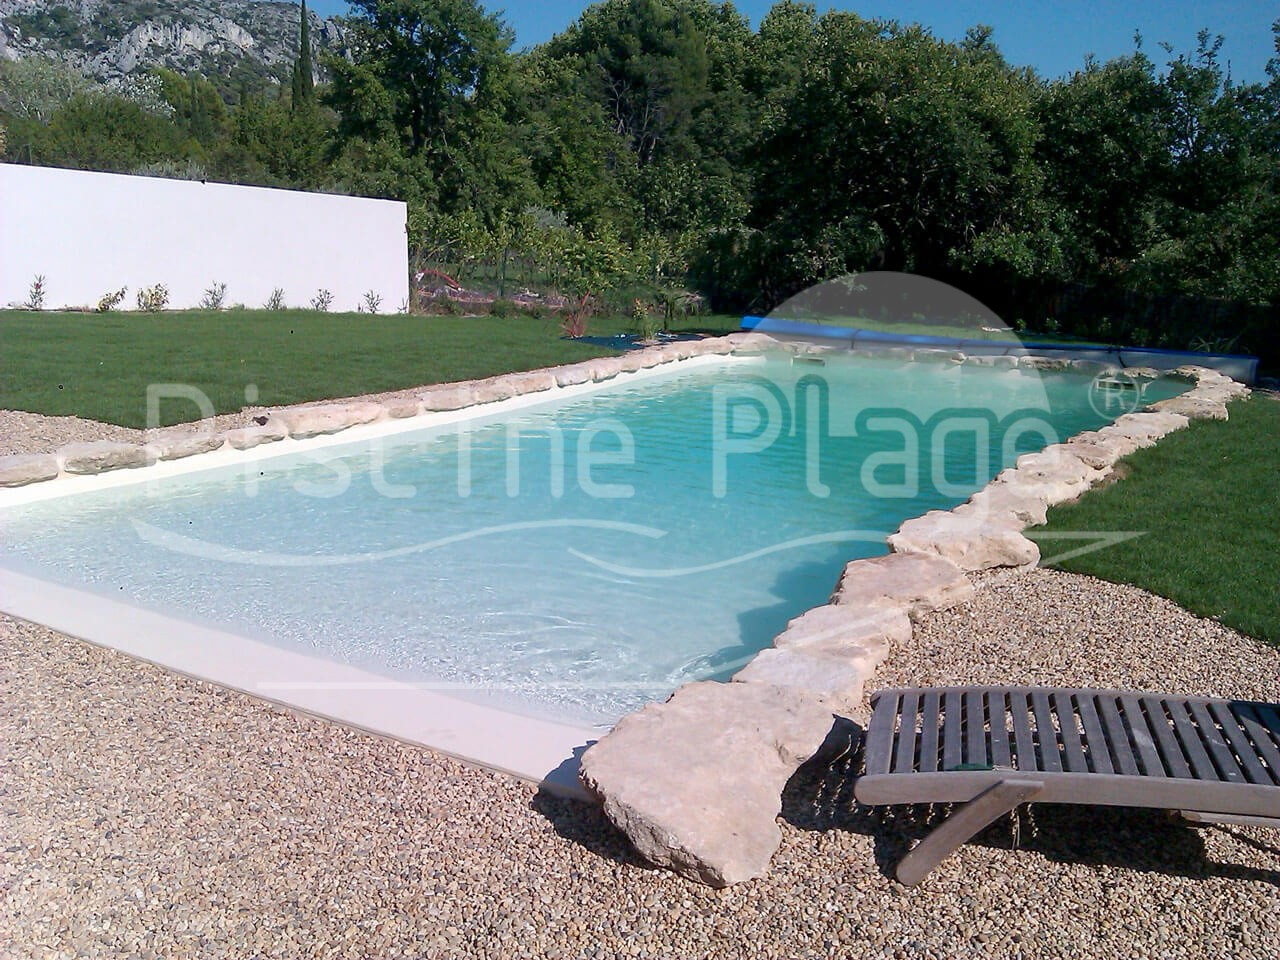 construction de piscine cavaillon piscine plage